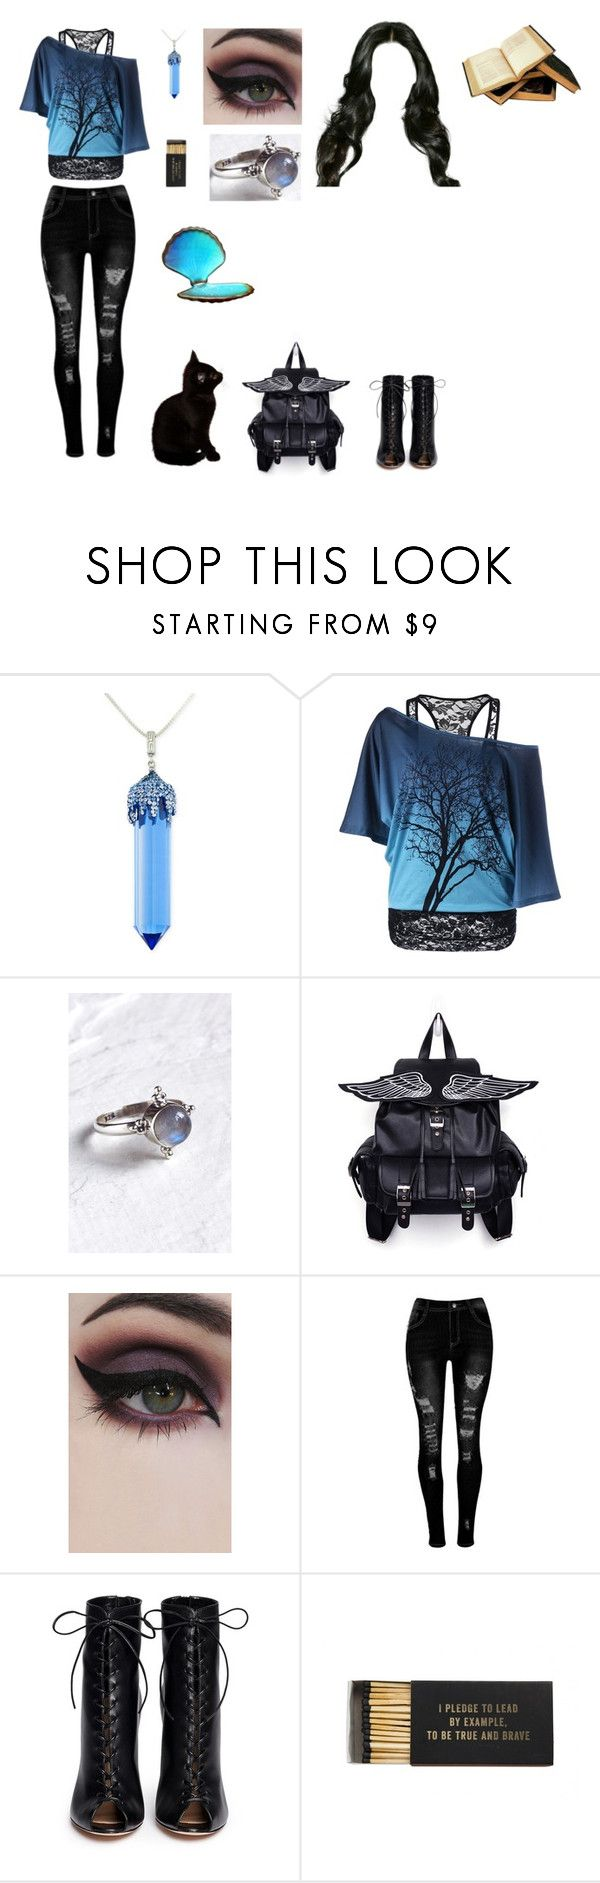 """Blue aurora"" by me1ody ❤ liked on Polyvore featuring Simone I. Smith, Aluna Mae, Concrete Minerals, Gianvito Rossi and Jayson Home"